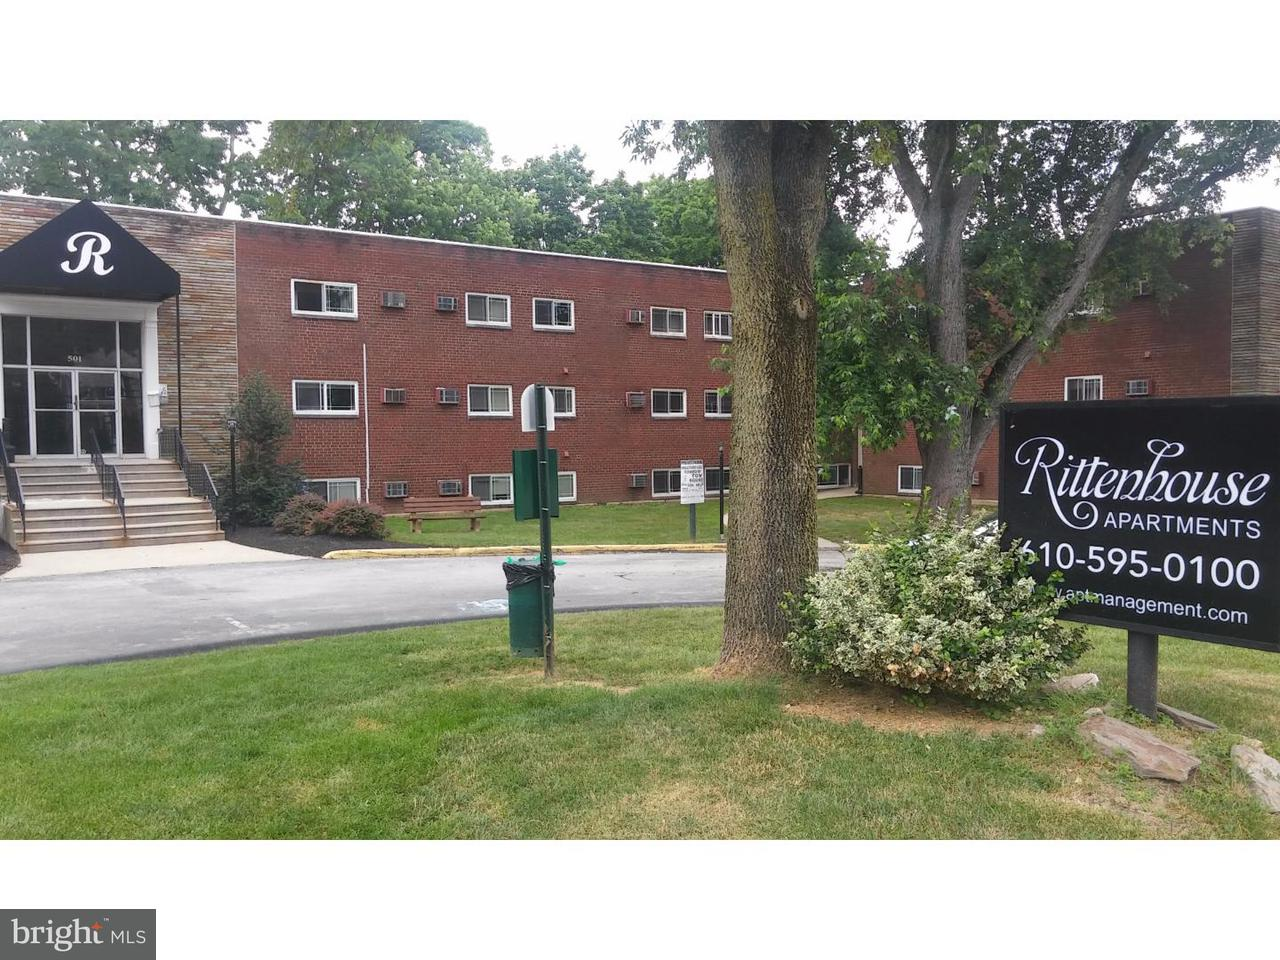 Single Family Home for Rent at 501 LAWRENCE RD #A5 Broomall, Pennsylvania 19008 United States